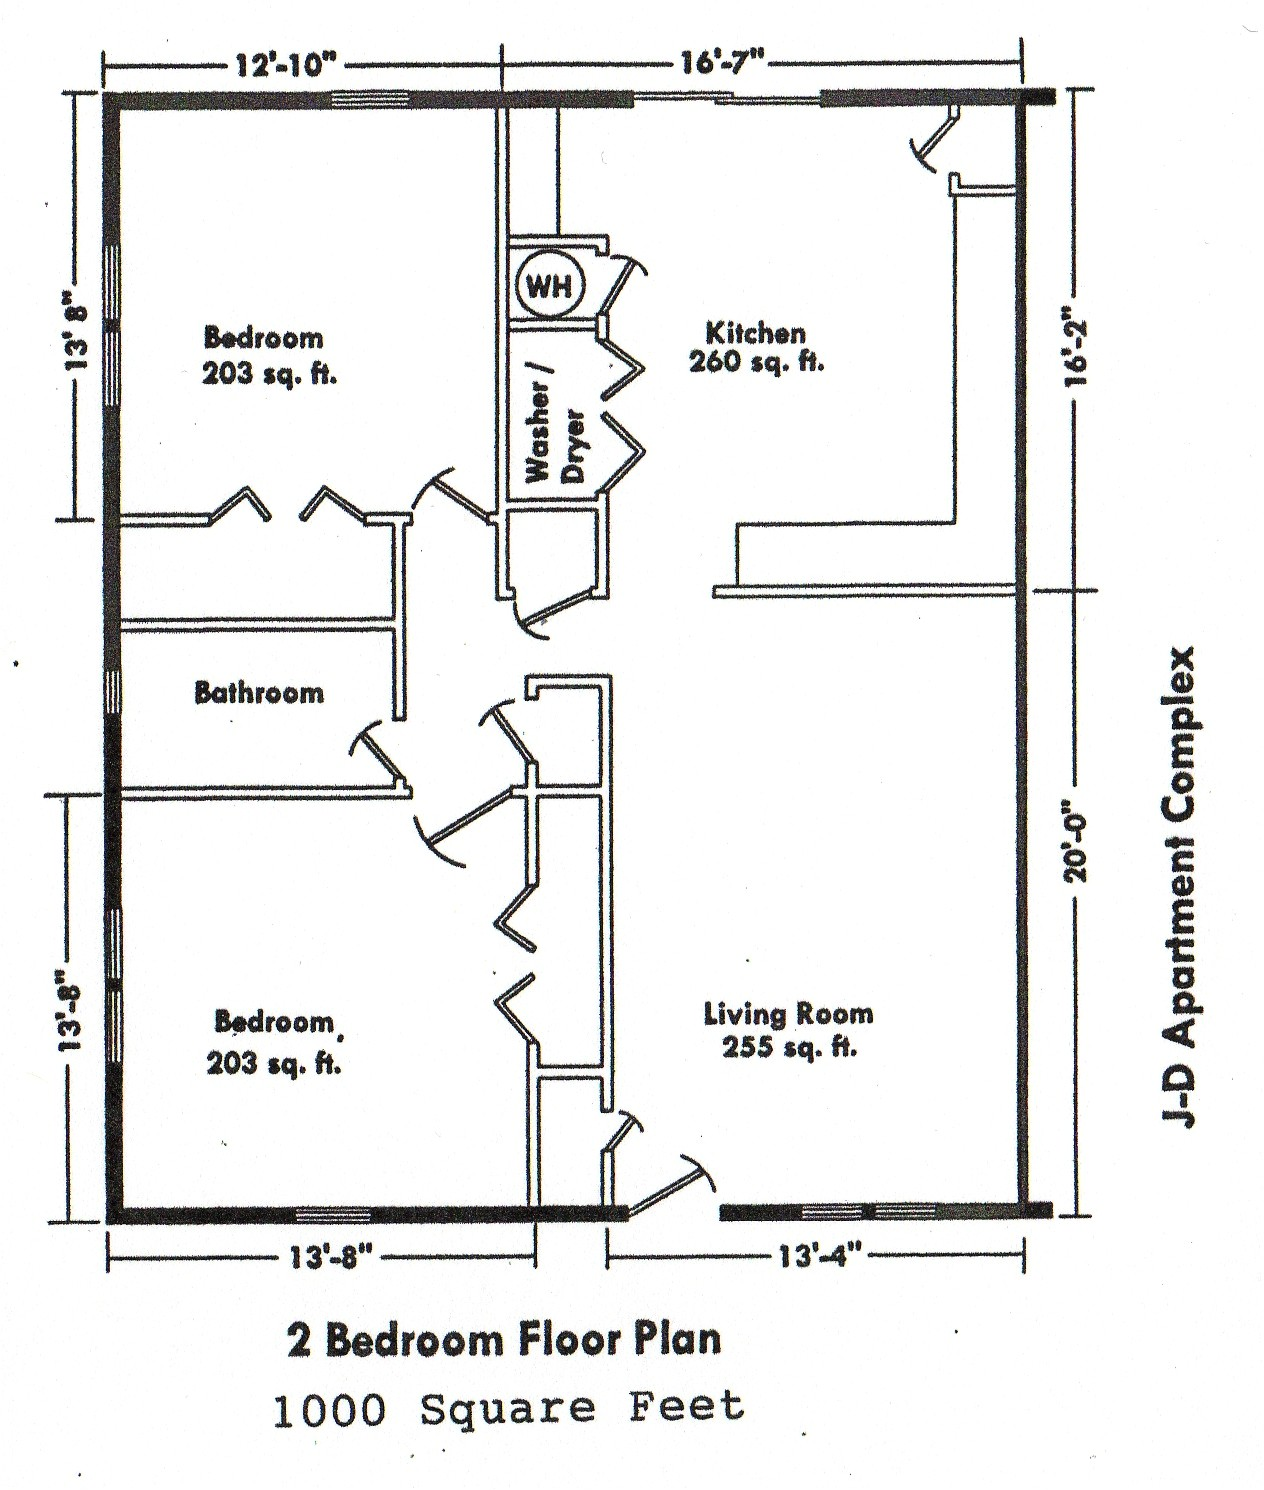 modular homes 2 bedroom floor plans